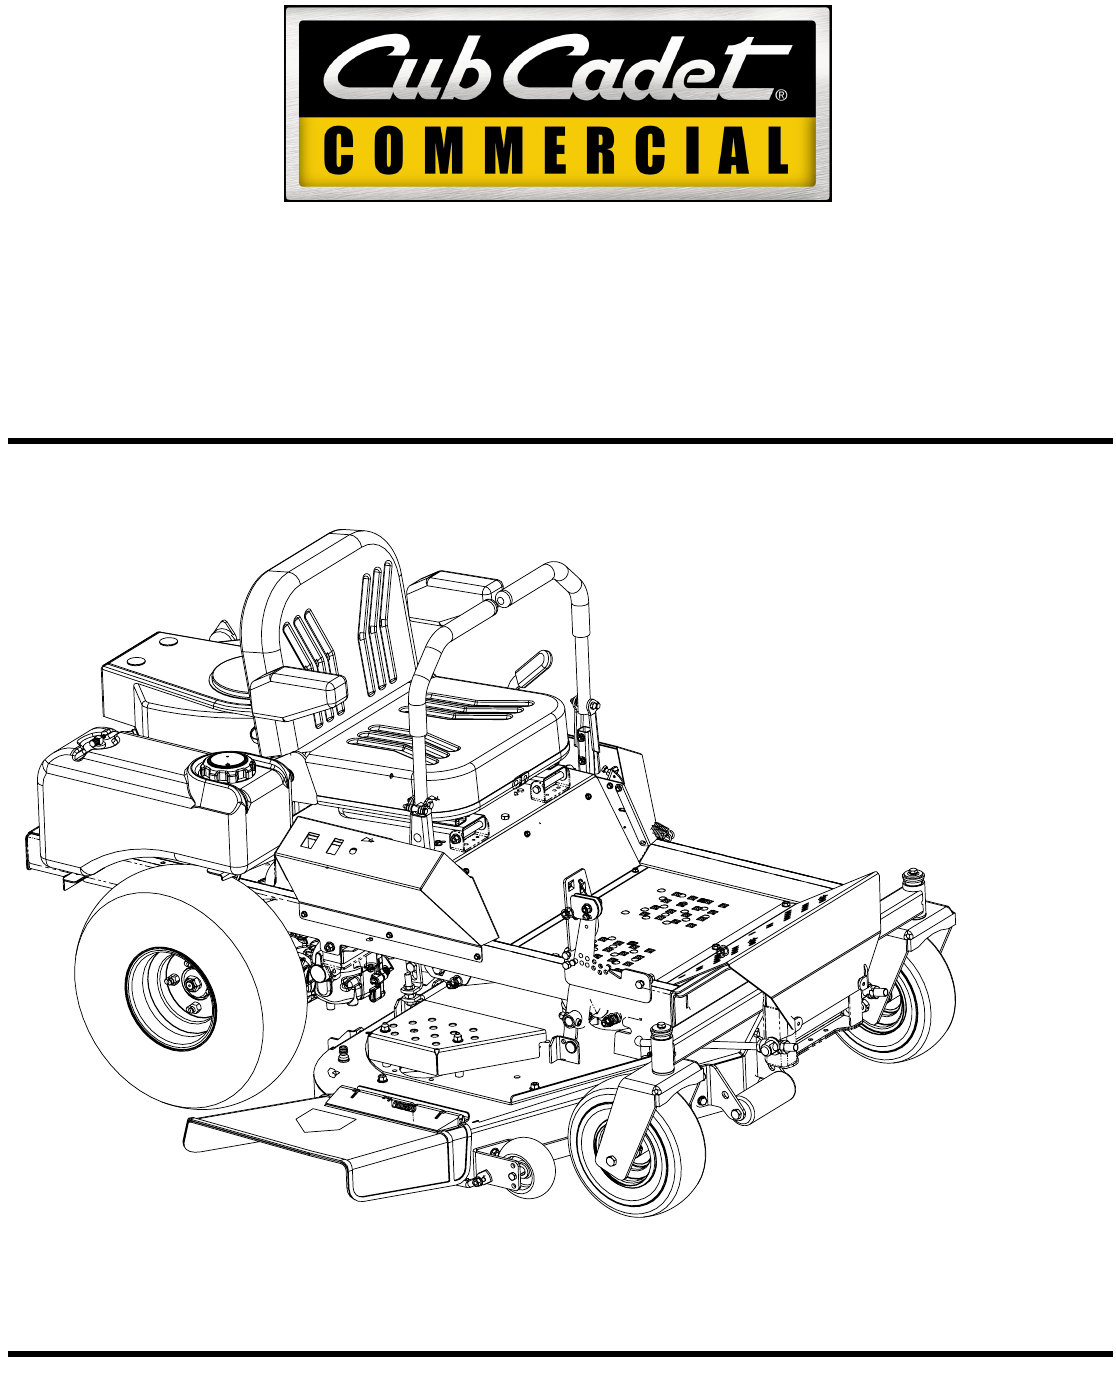 Cub Cadet Lawn Mower 23HP ENFORCER 54 User Guide